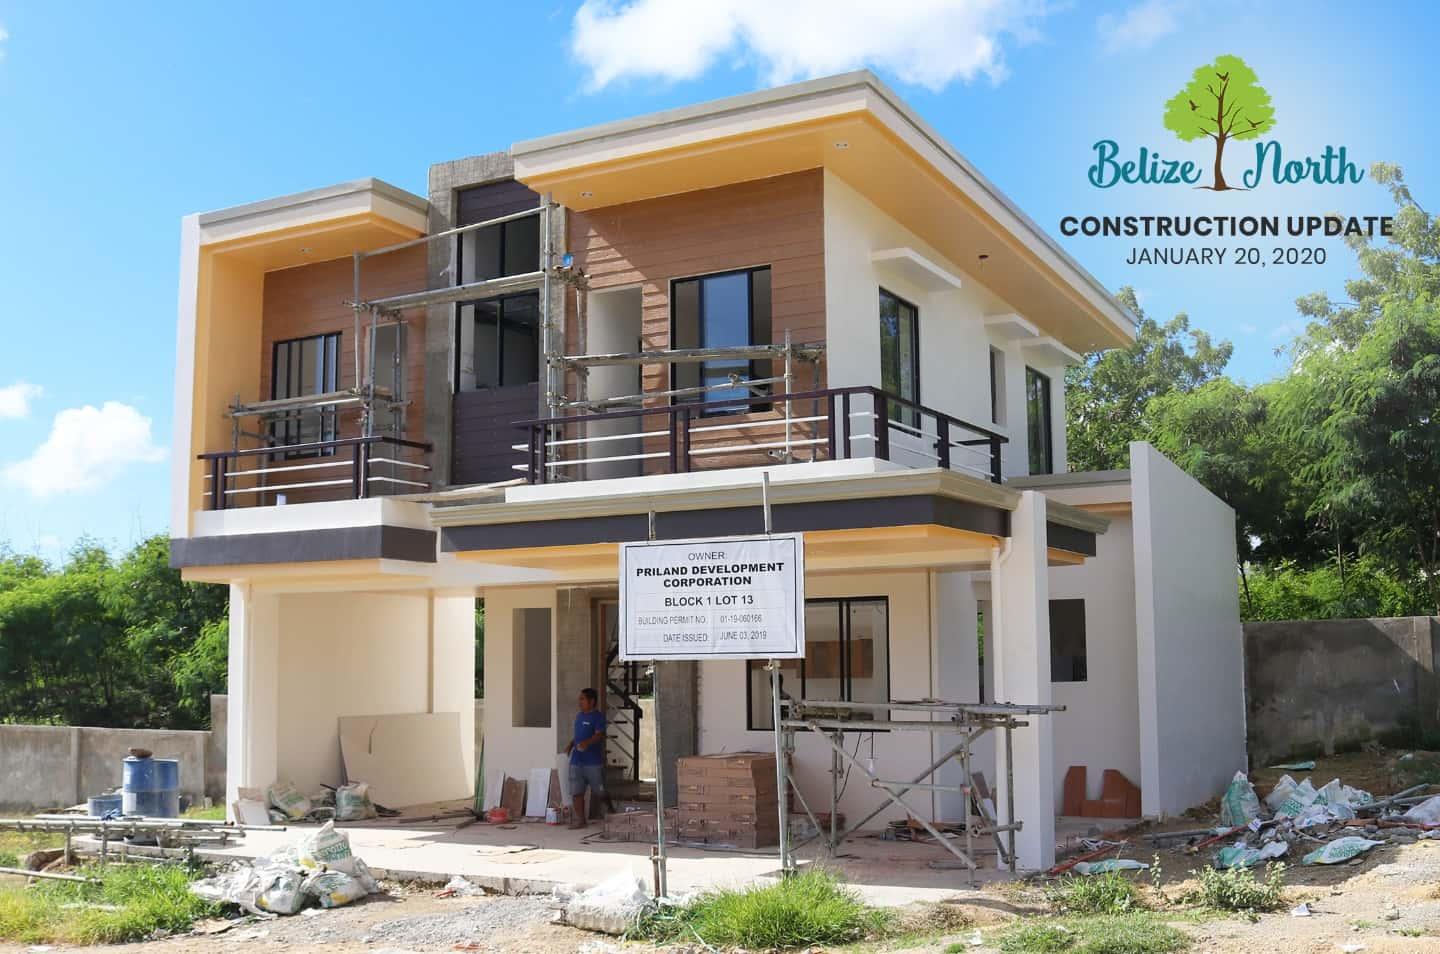 Belize North Construction update as of June 2020